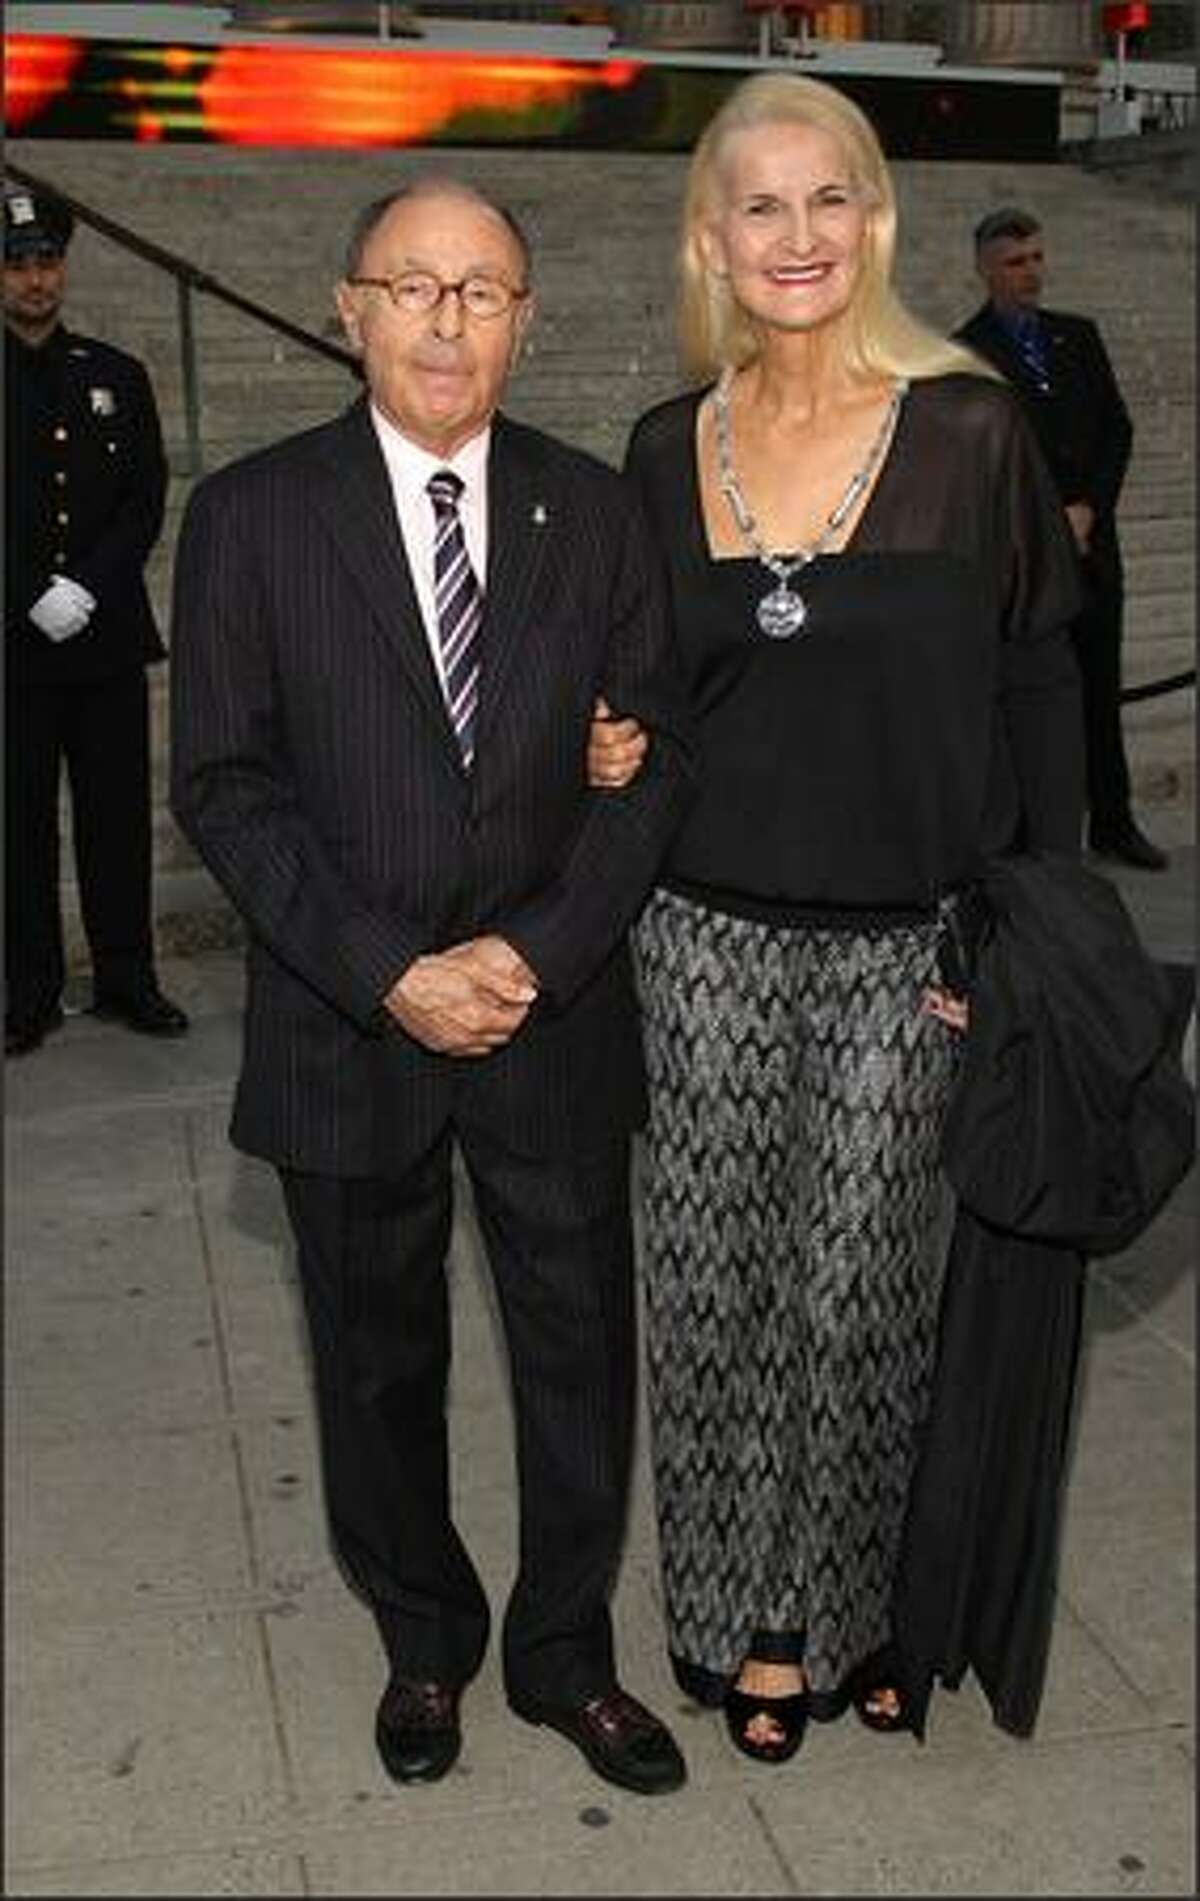 Editor-In-Chief of Variety Peter Bart and Phyllis Fredette arrive.